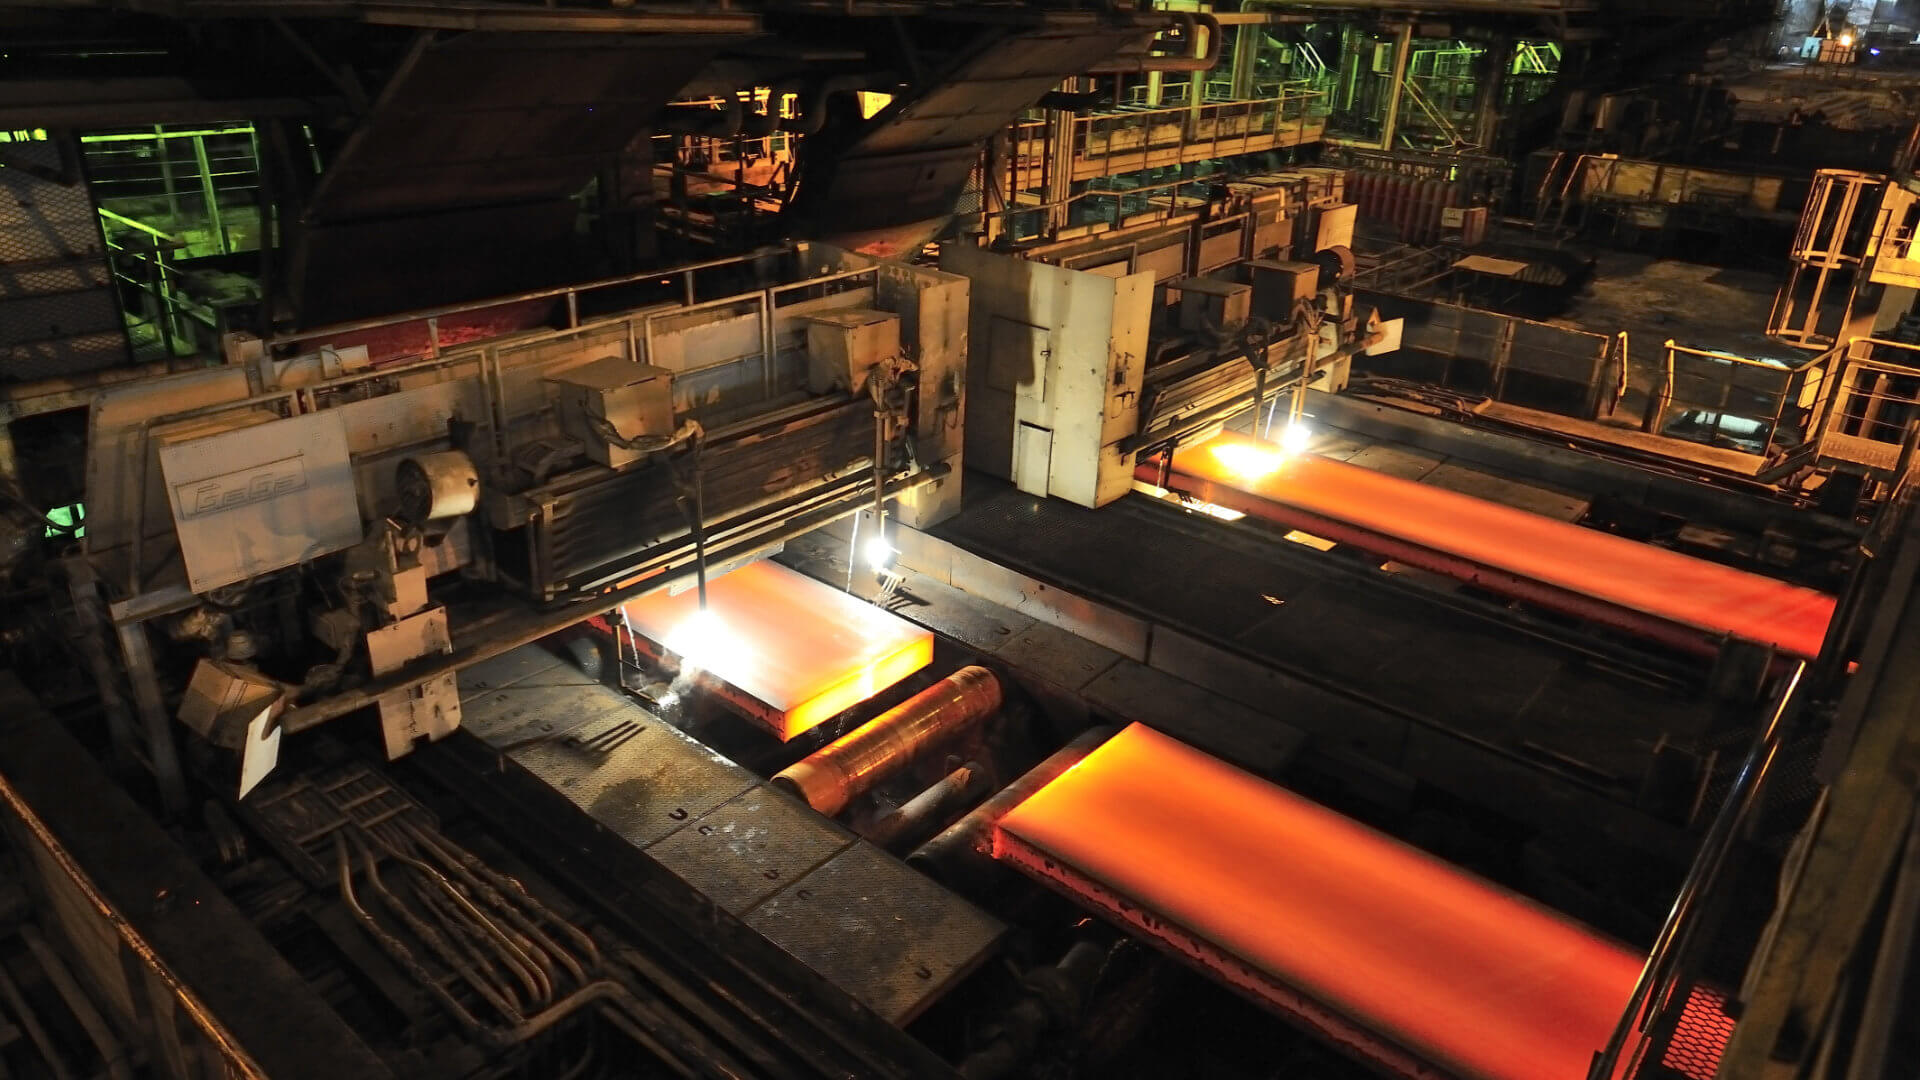 Steel Mill using planetary speed reducers to control the movement of the material through the automated production line